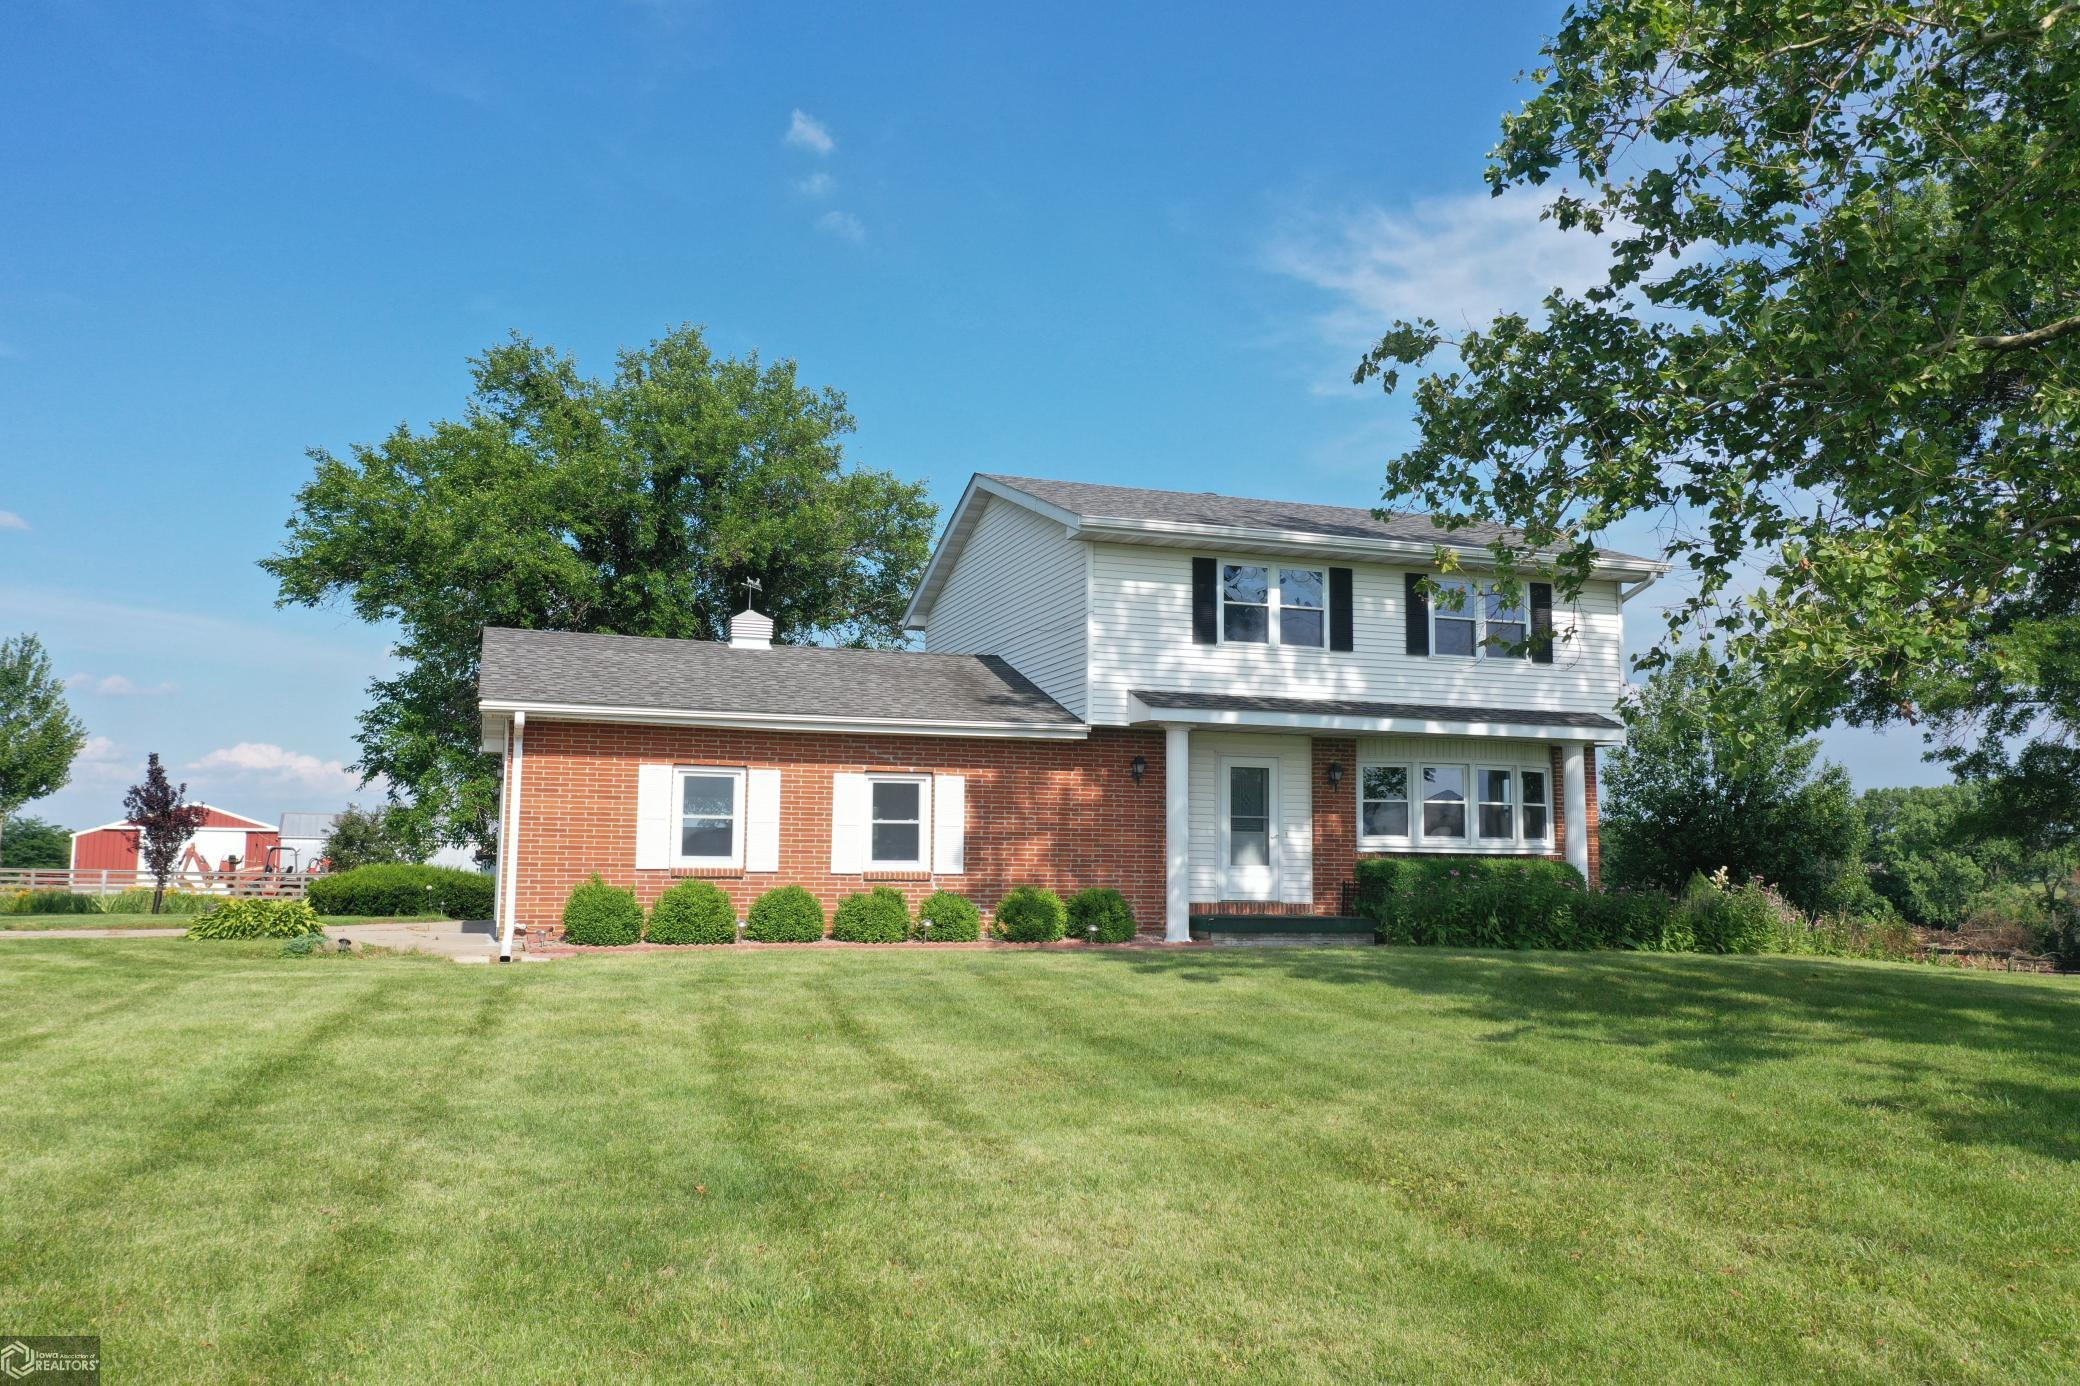 18216 Hwy 63 Property Photo - Bloomfield, IA real estate listing